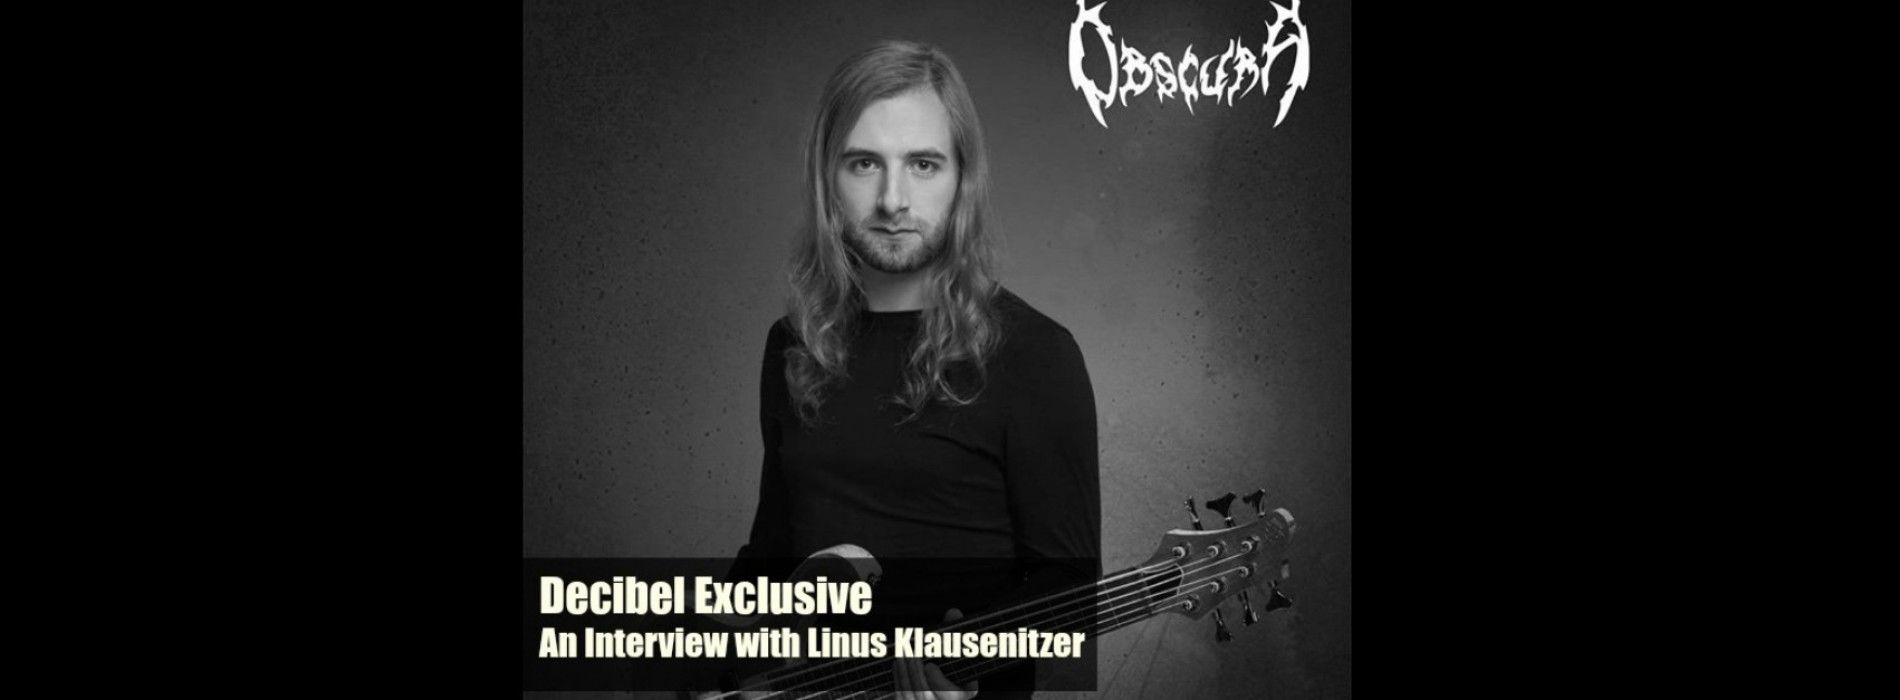 Decibel Exclusive : An Interview with Linus Klausenitzer